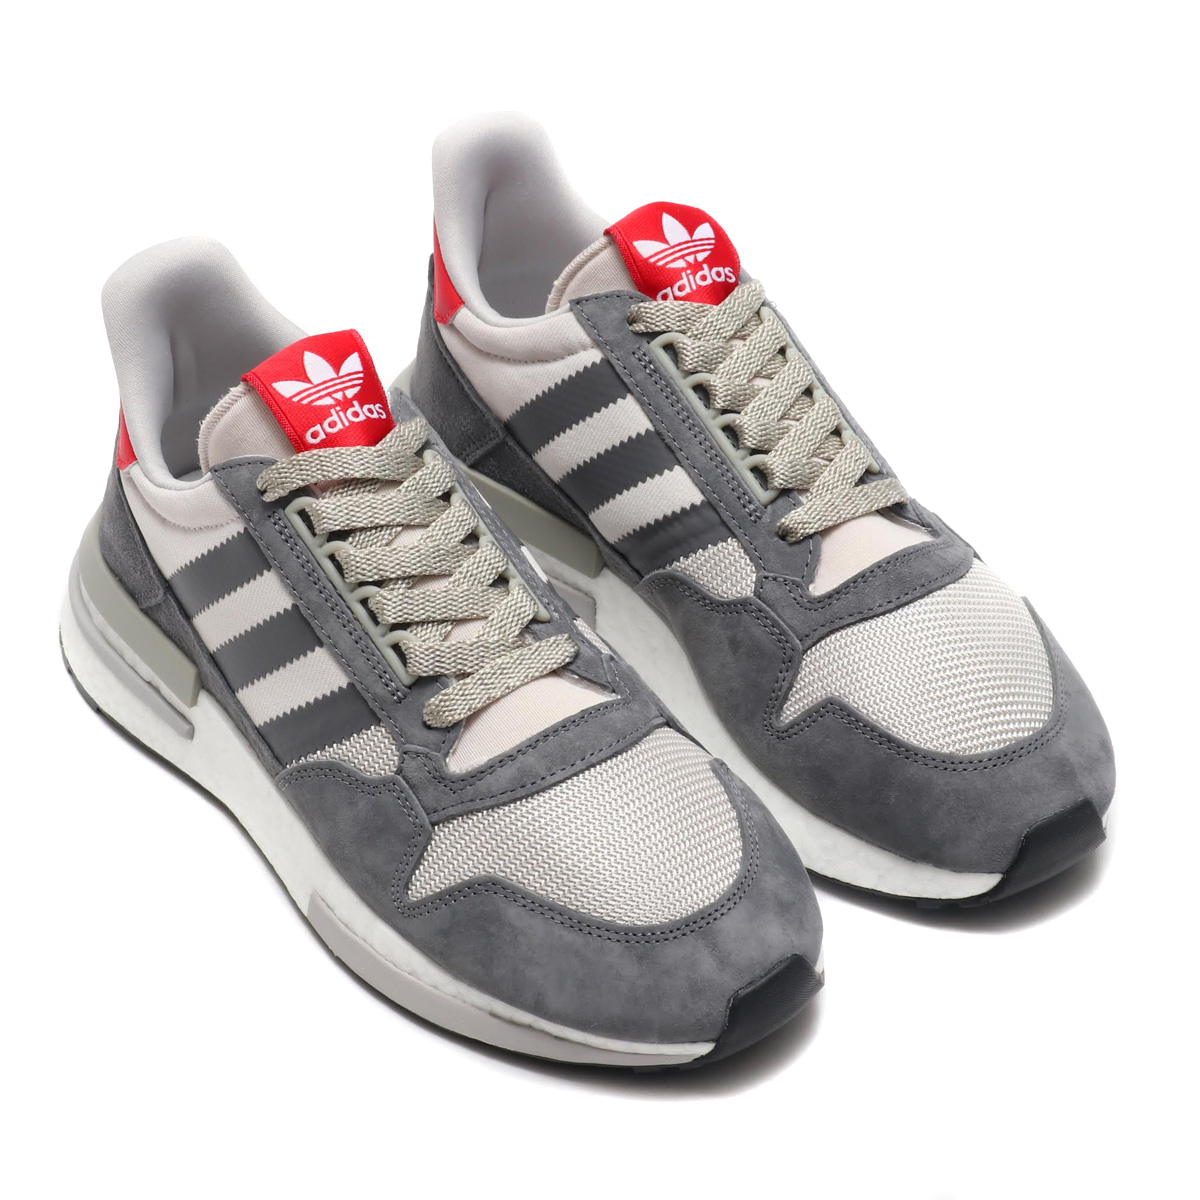 the best attitude fc347 ccf89 adidas Originals ZX 500 RM (Adidas originals ZX 500 RM) GREY/RUNNING  WHITE/SCARLET 18FA-I